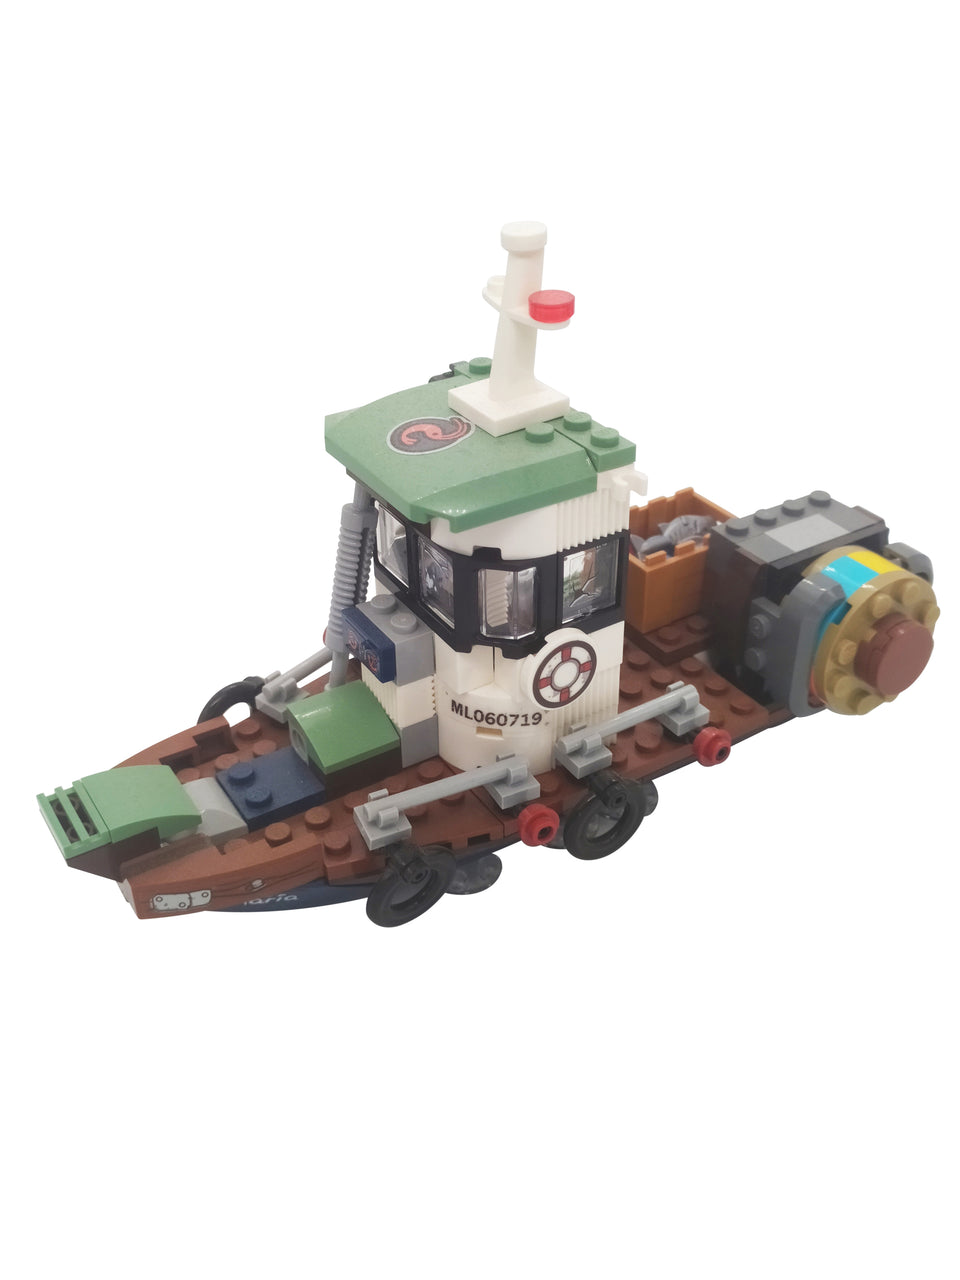 Special set of Lego fishing boat